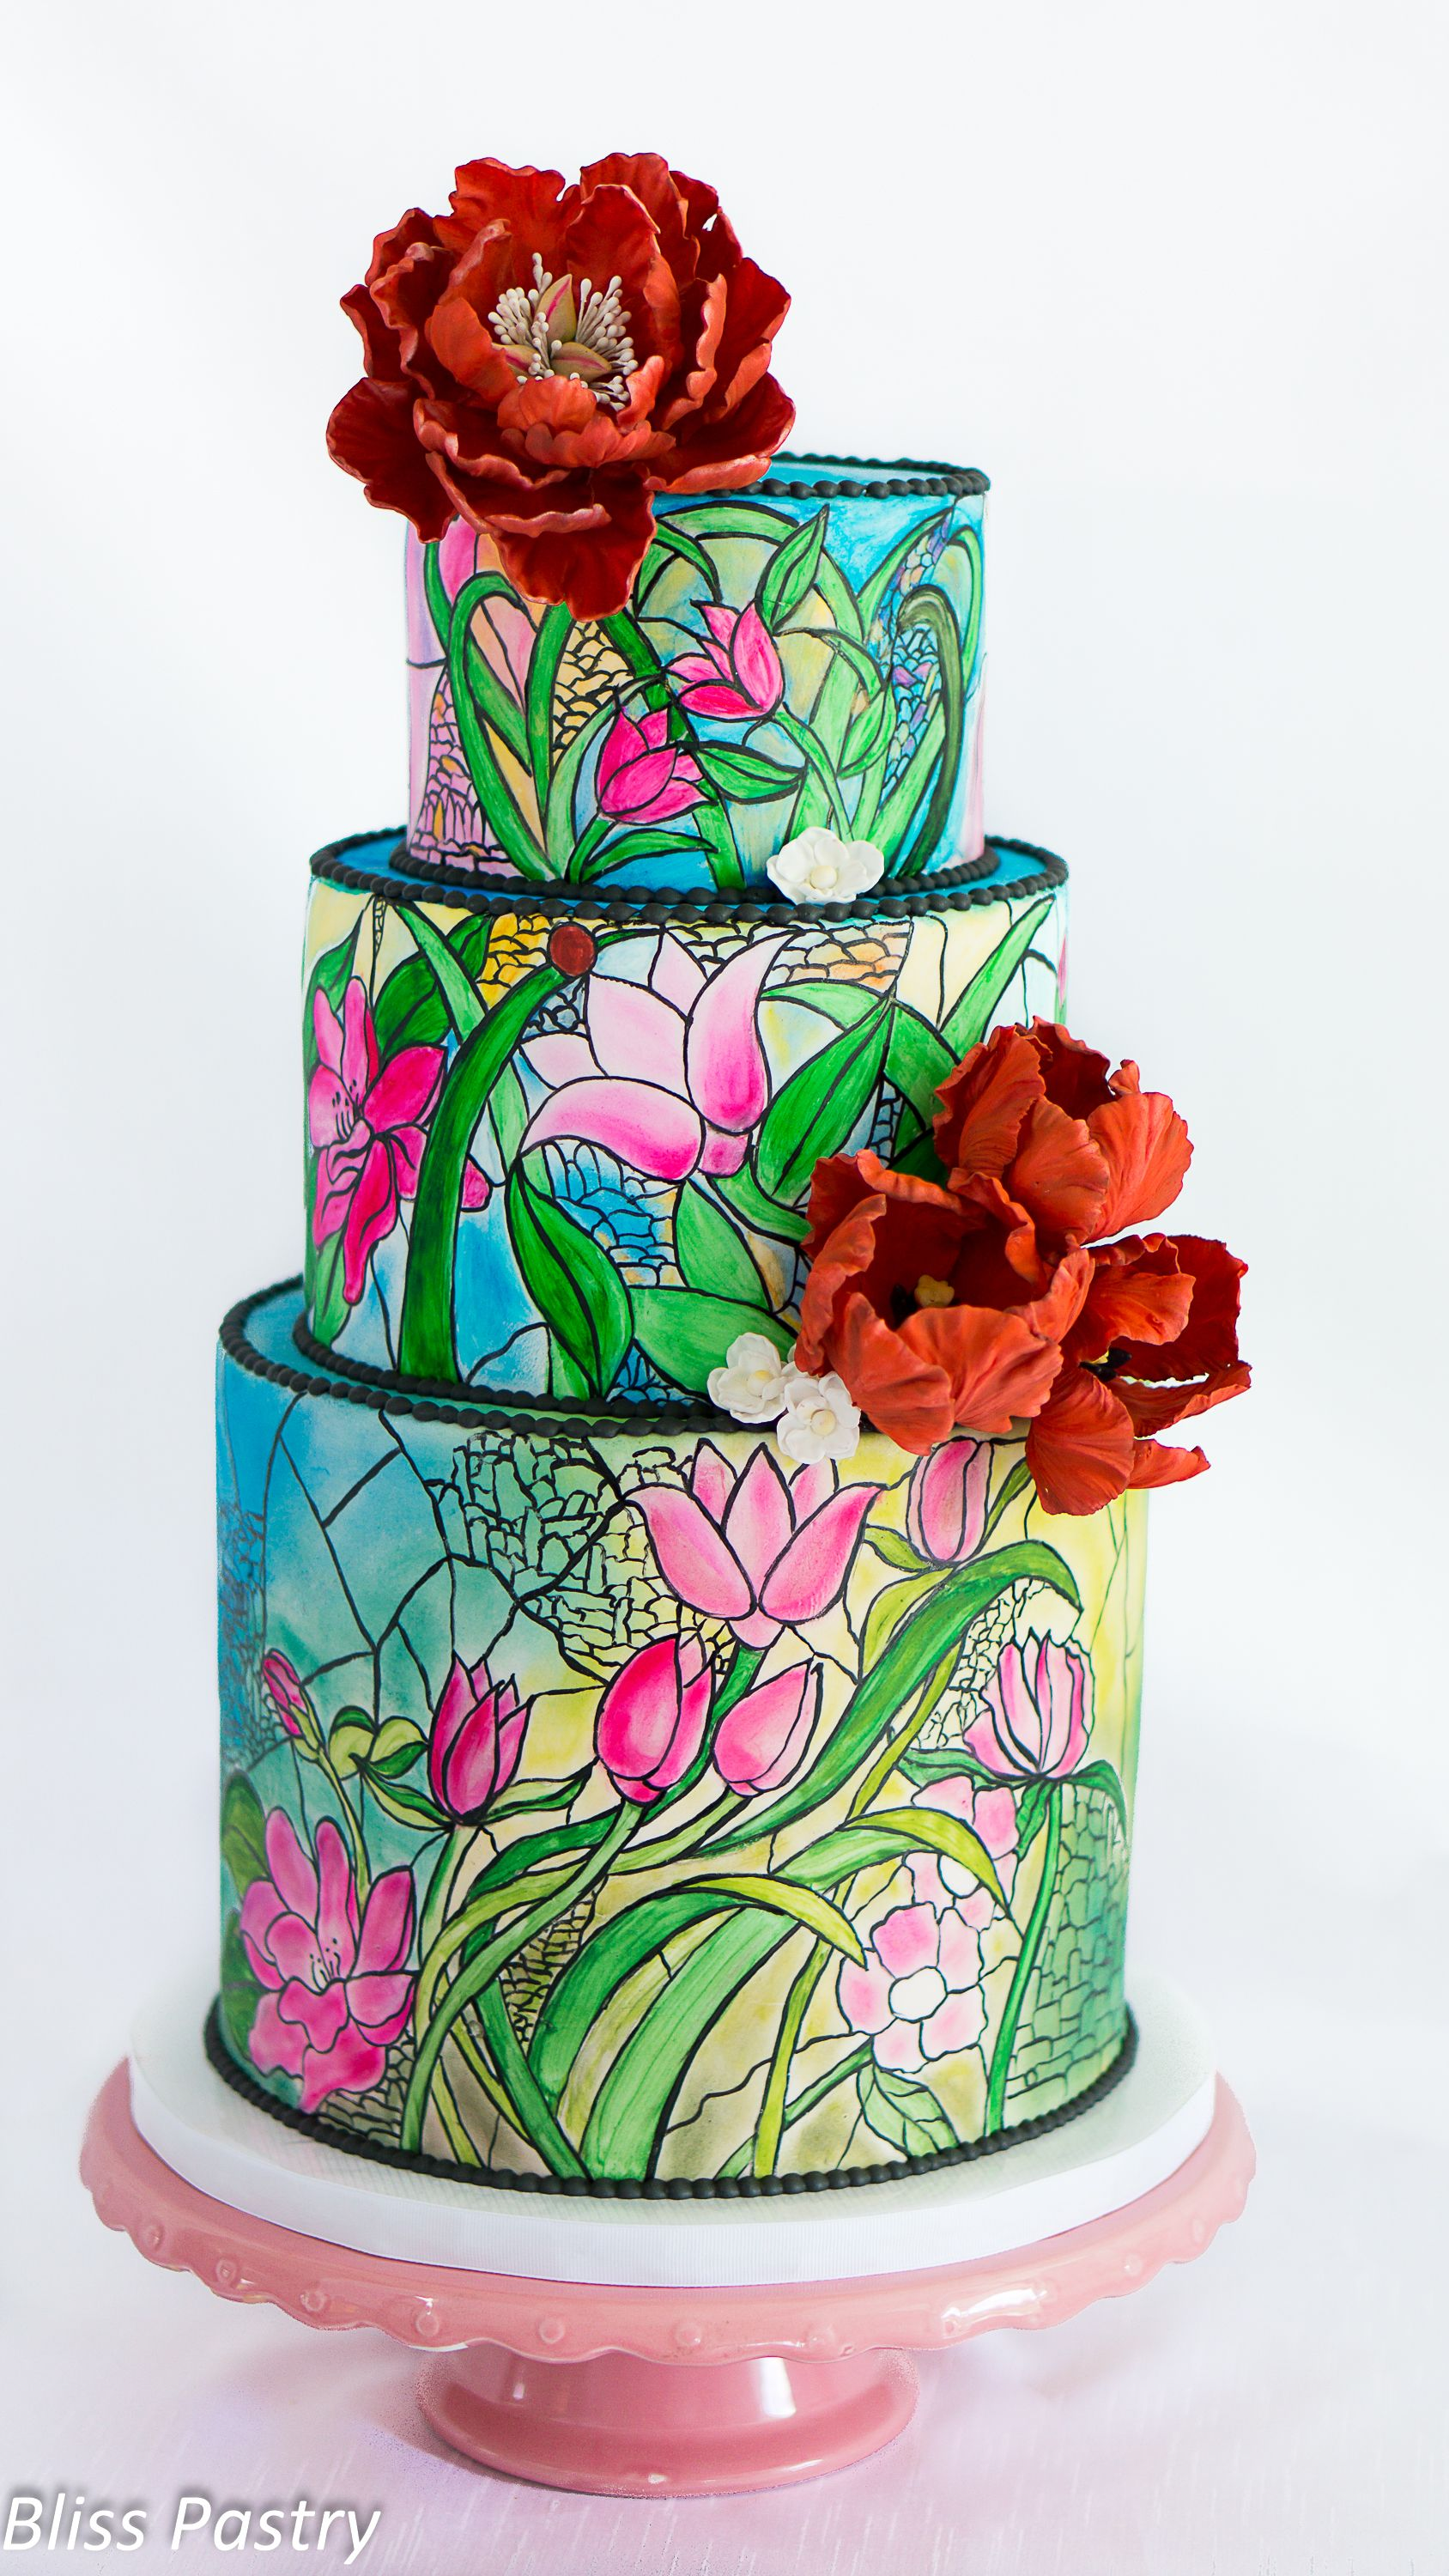 Stained Glass Wedding Cake - Bold and colorful stained glass wedding cake